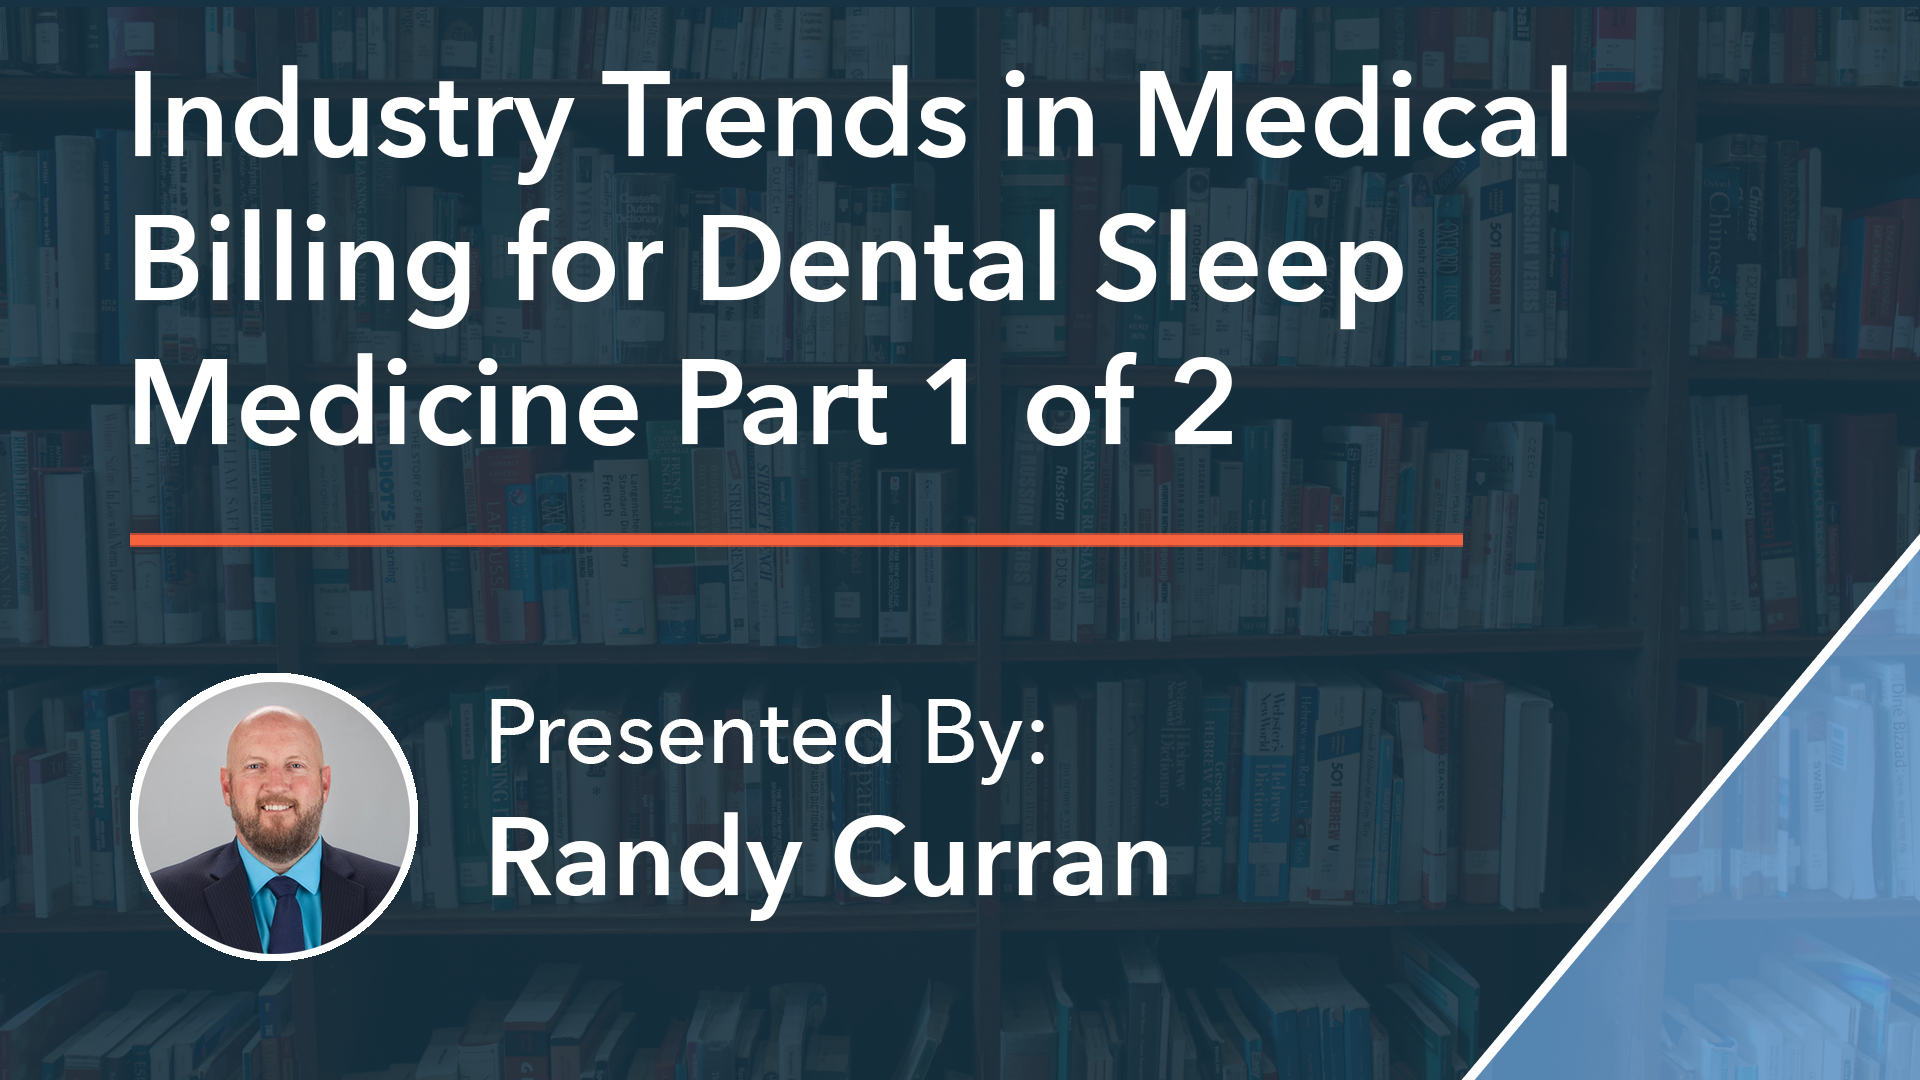 https://osauniversity.org/wp-content/uploads/2019/07/Industry-Trends-in-Medical-Billing-for-Dental-Sleep-Medicine-Part-1-of-2.png